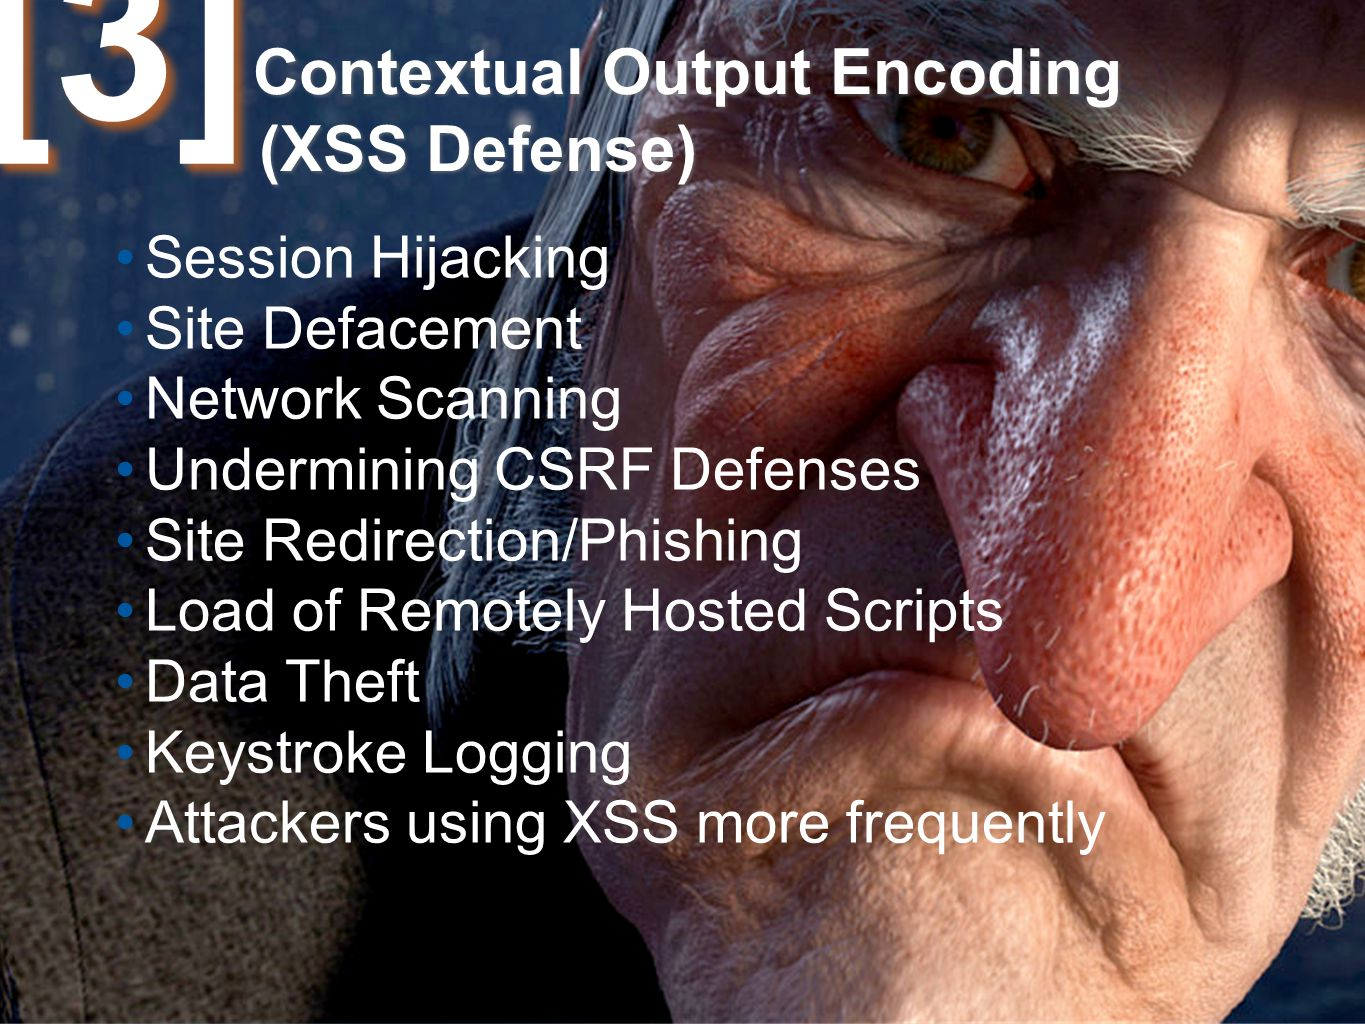 Contextual Output Encoding (XSS Defense) Session Hijacking Site Defacement Network Scanning Undermining CSRF Defenses Site Redirection/Phishing Load of Remotely Hosted Scripts Data Theft Keystroke Logging Attackers using XSS more frequently [3][3]